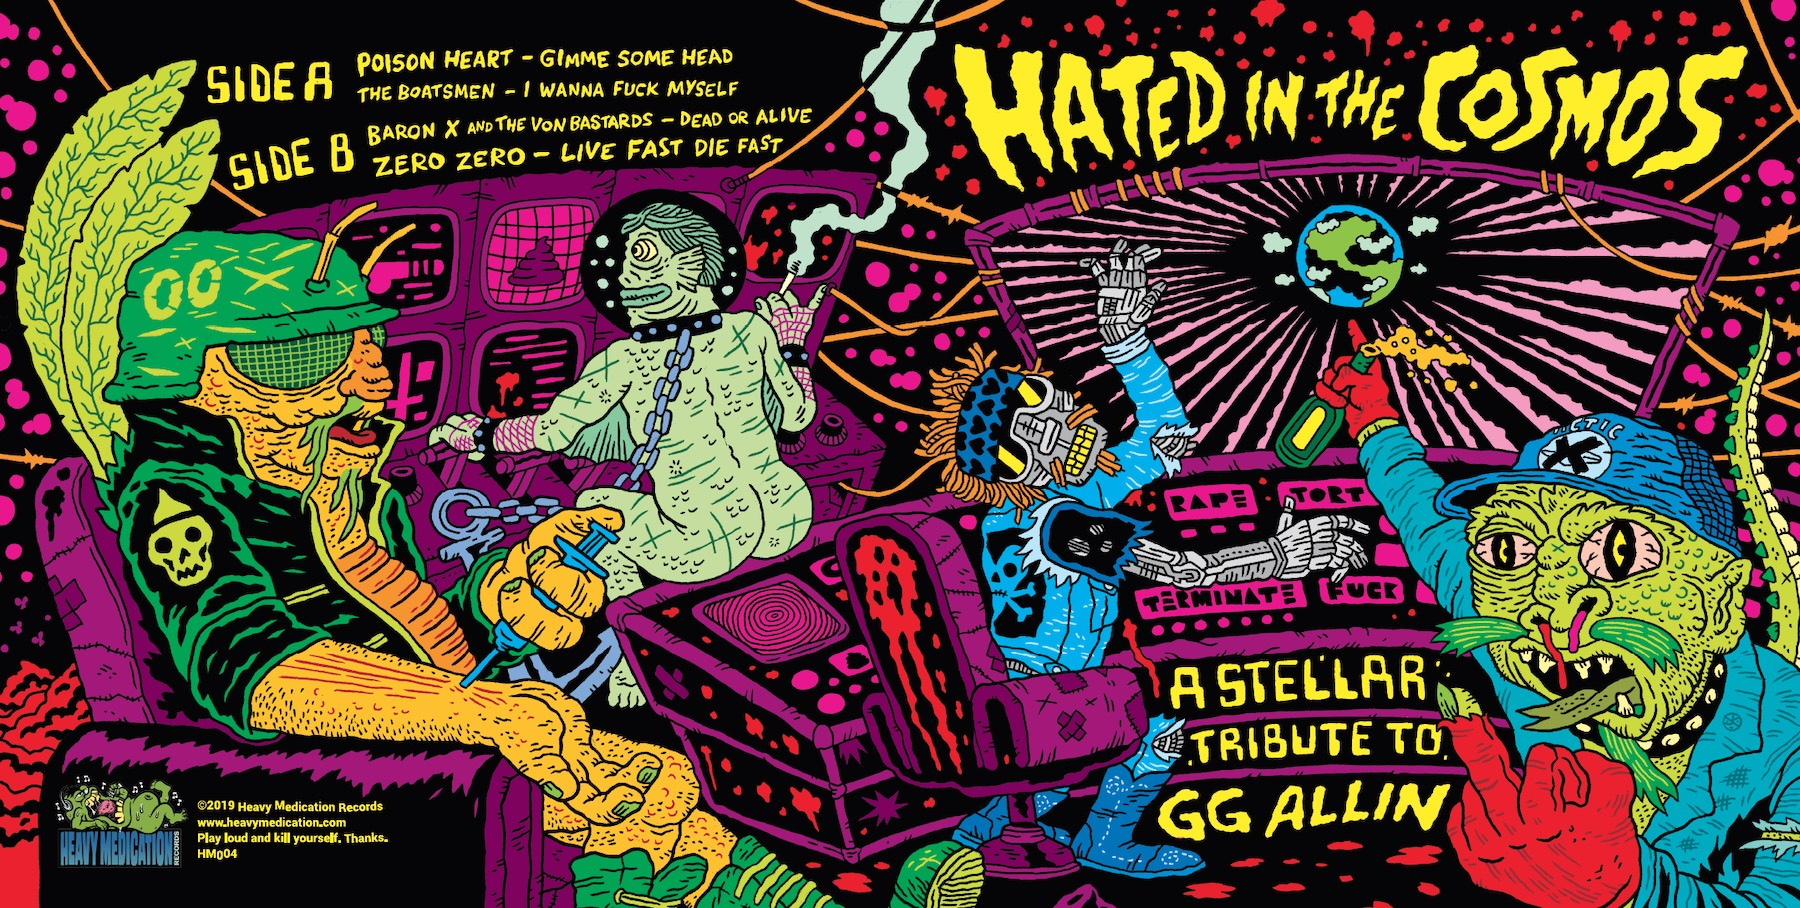 V/A - Hated in the Cosmos: A Stellar Tribute to GG Allin 7